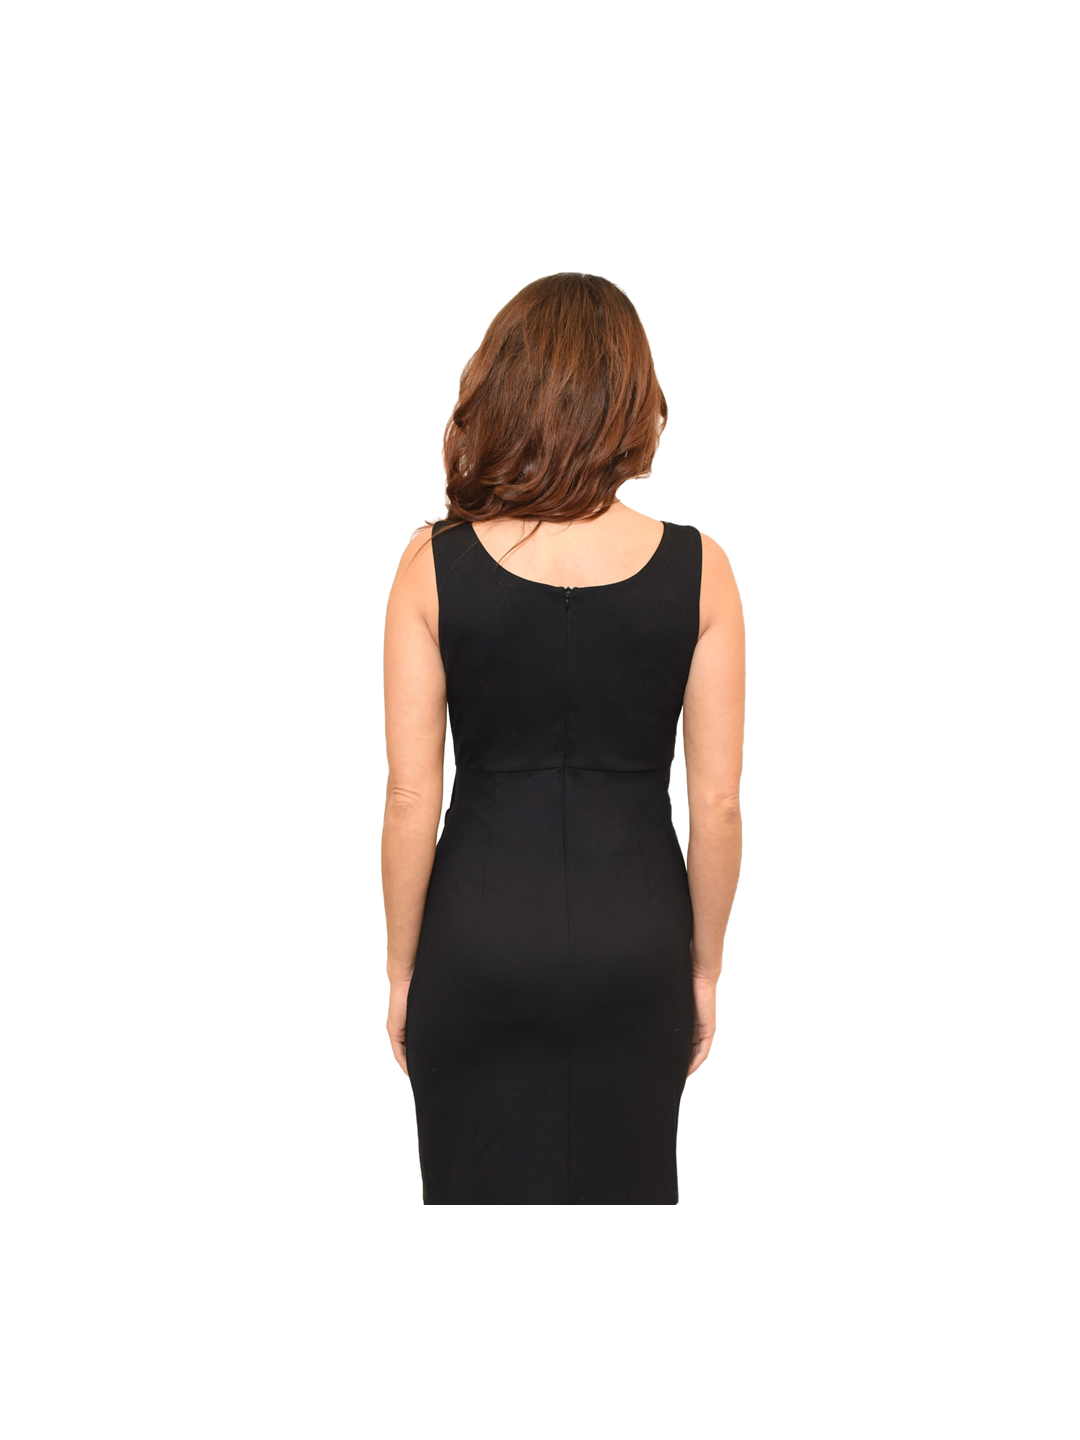 SCULPTURA Electra Style [Sculpt-It-Your-Way] Shapewear Dress (Rear View)